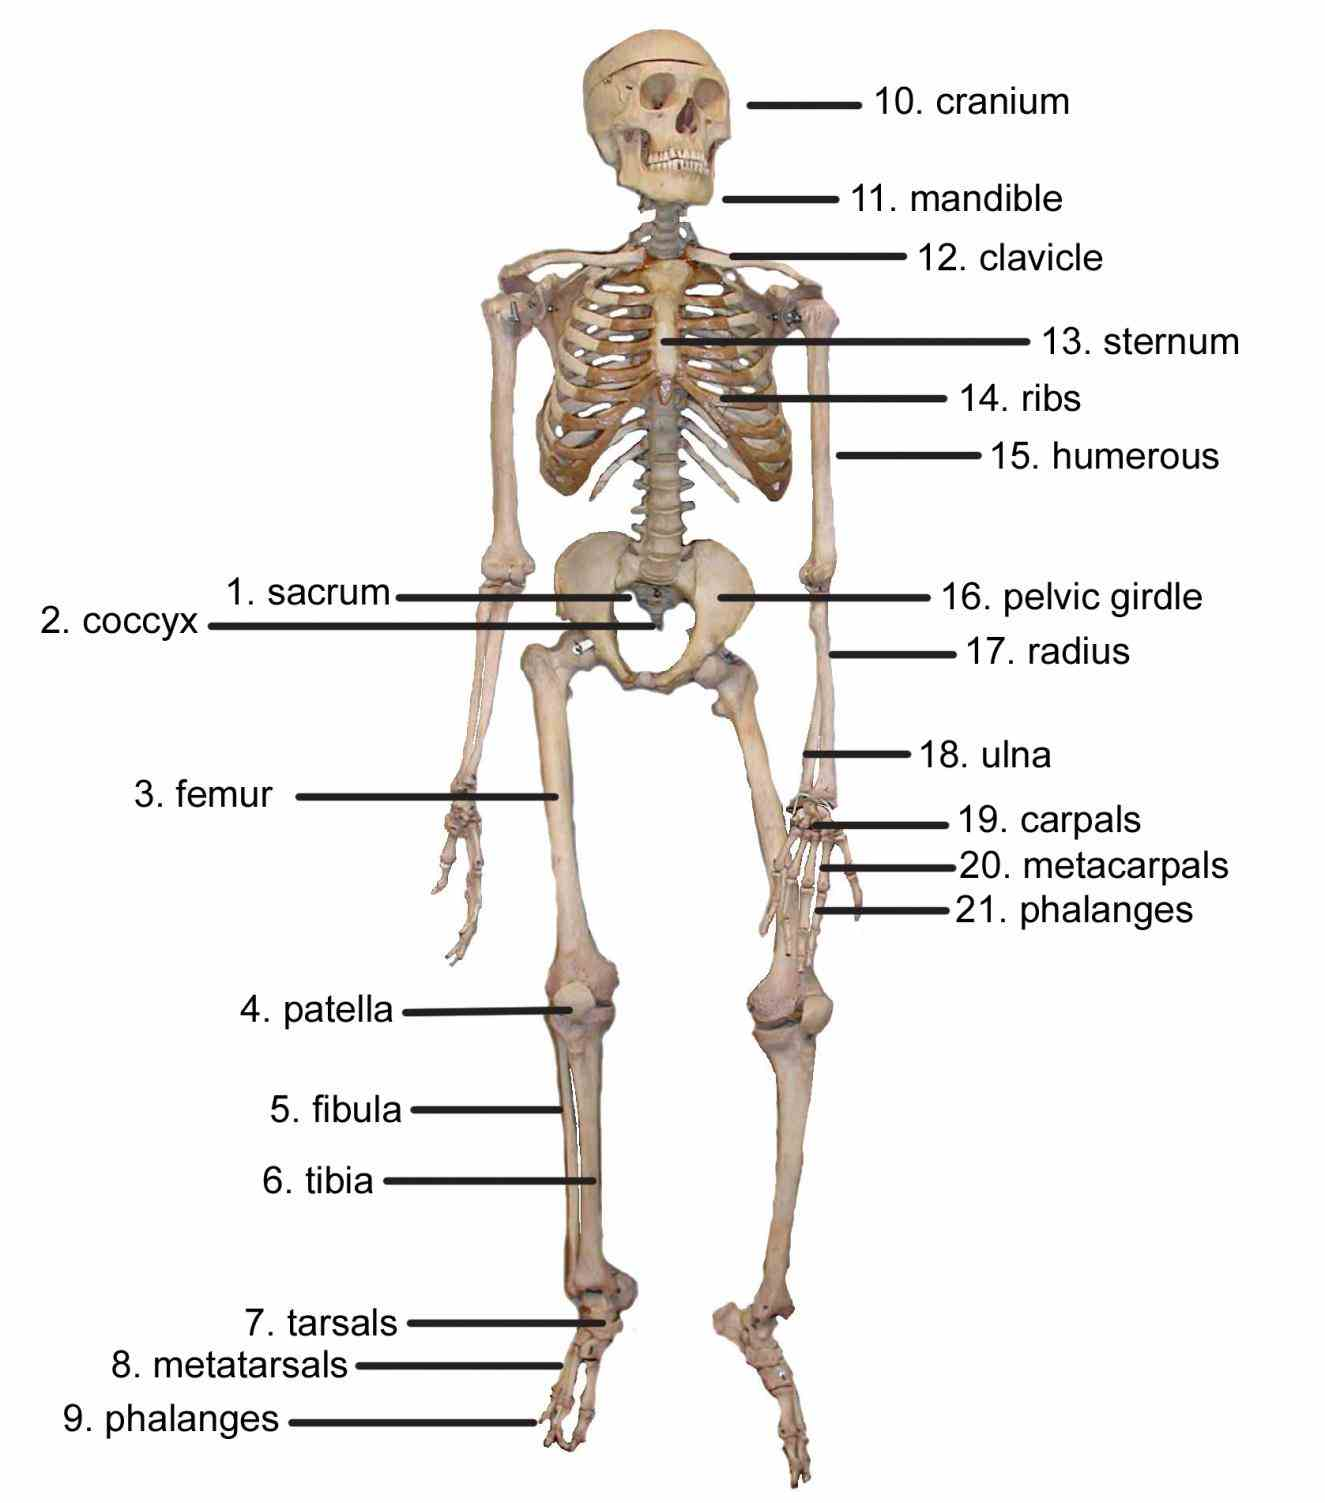 system muscular nervous respiratory cardiovascular there Major System Of The Human Body Diagram are major organ systems in the